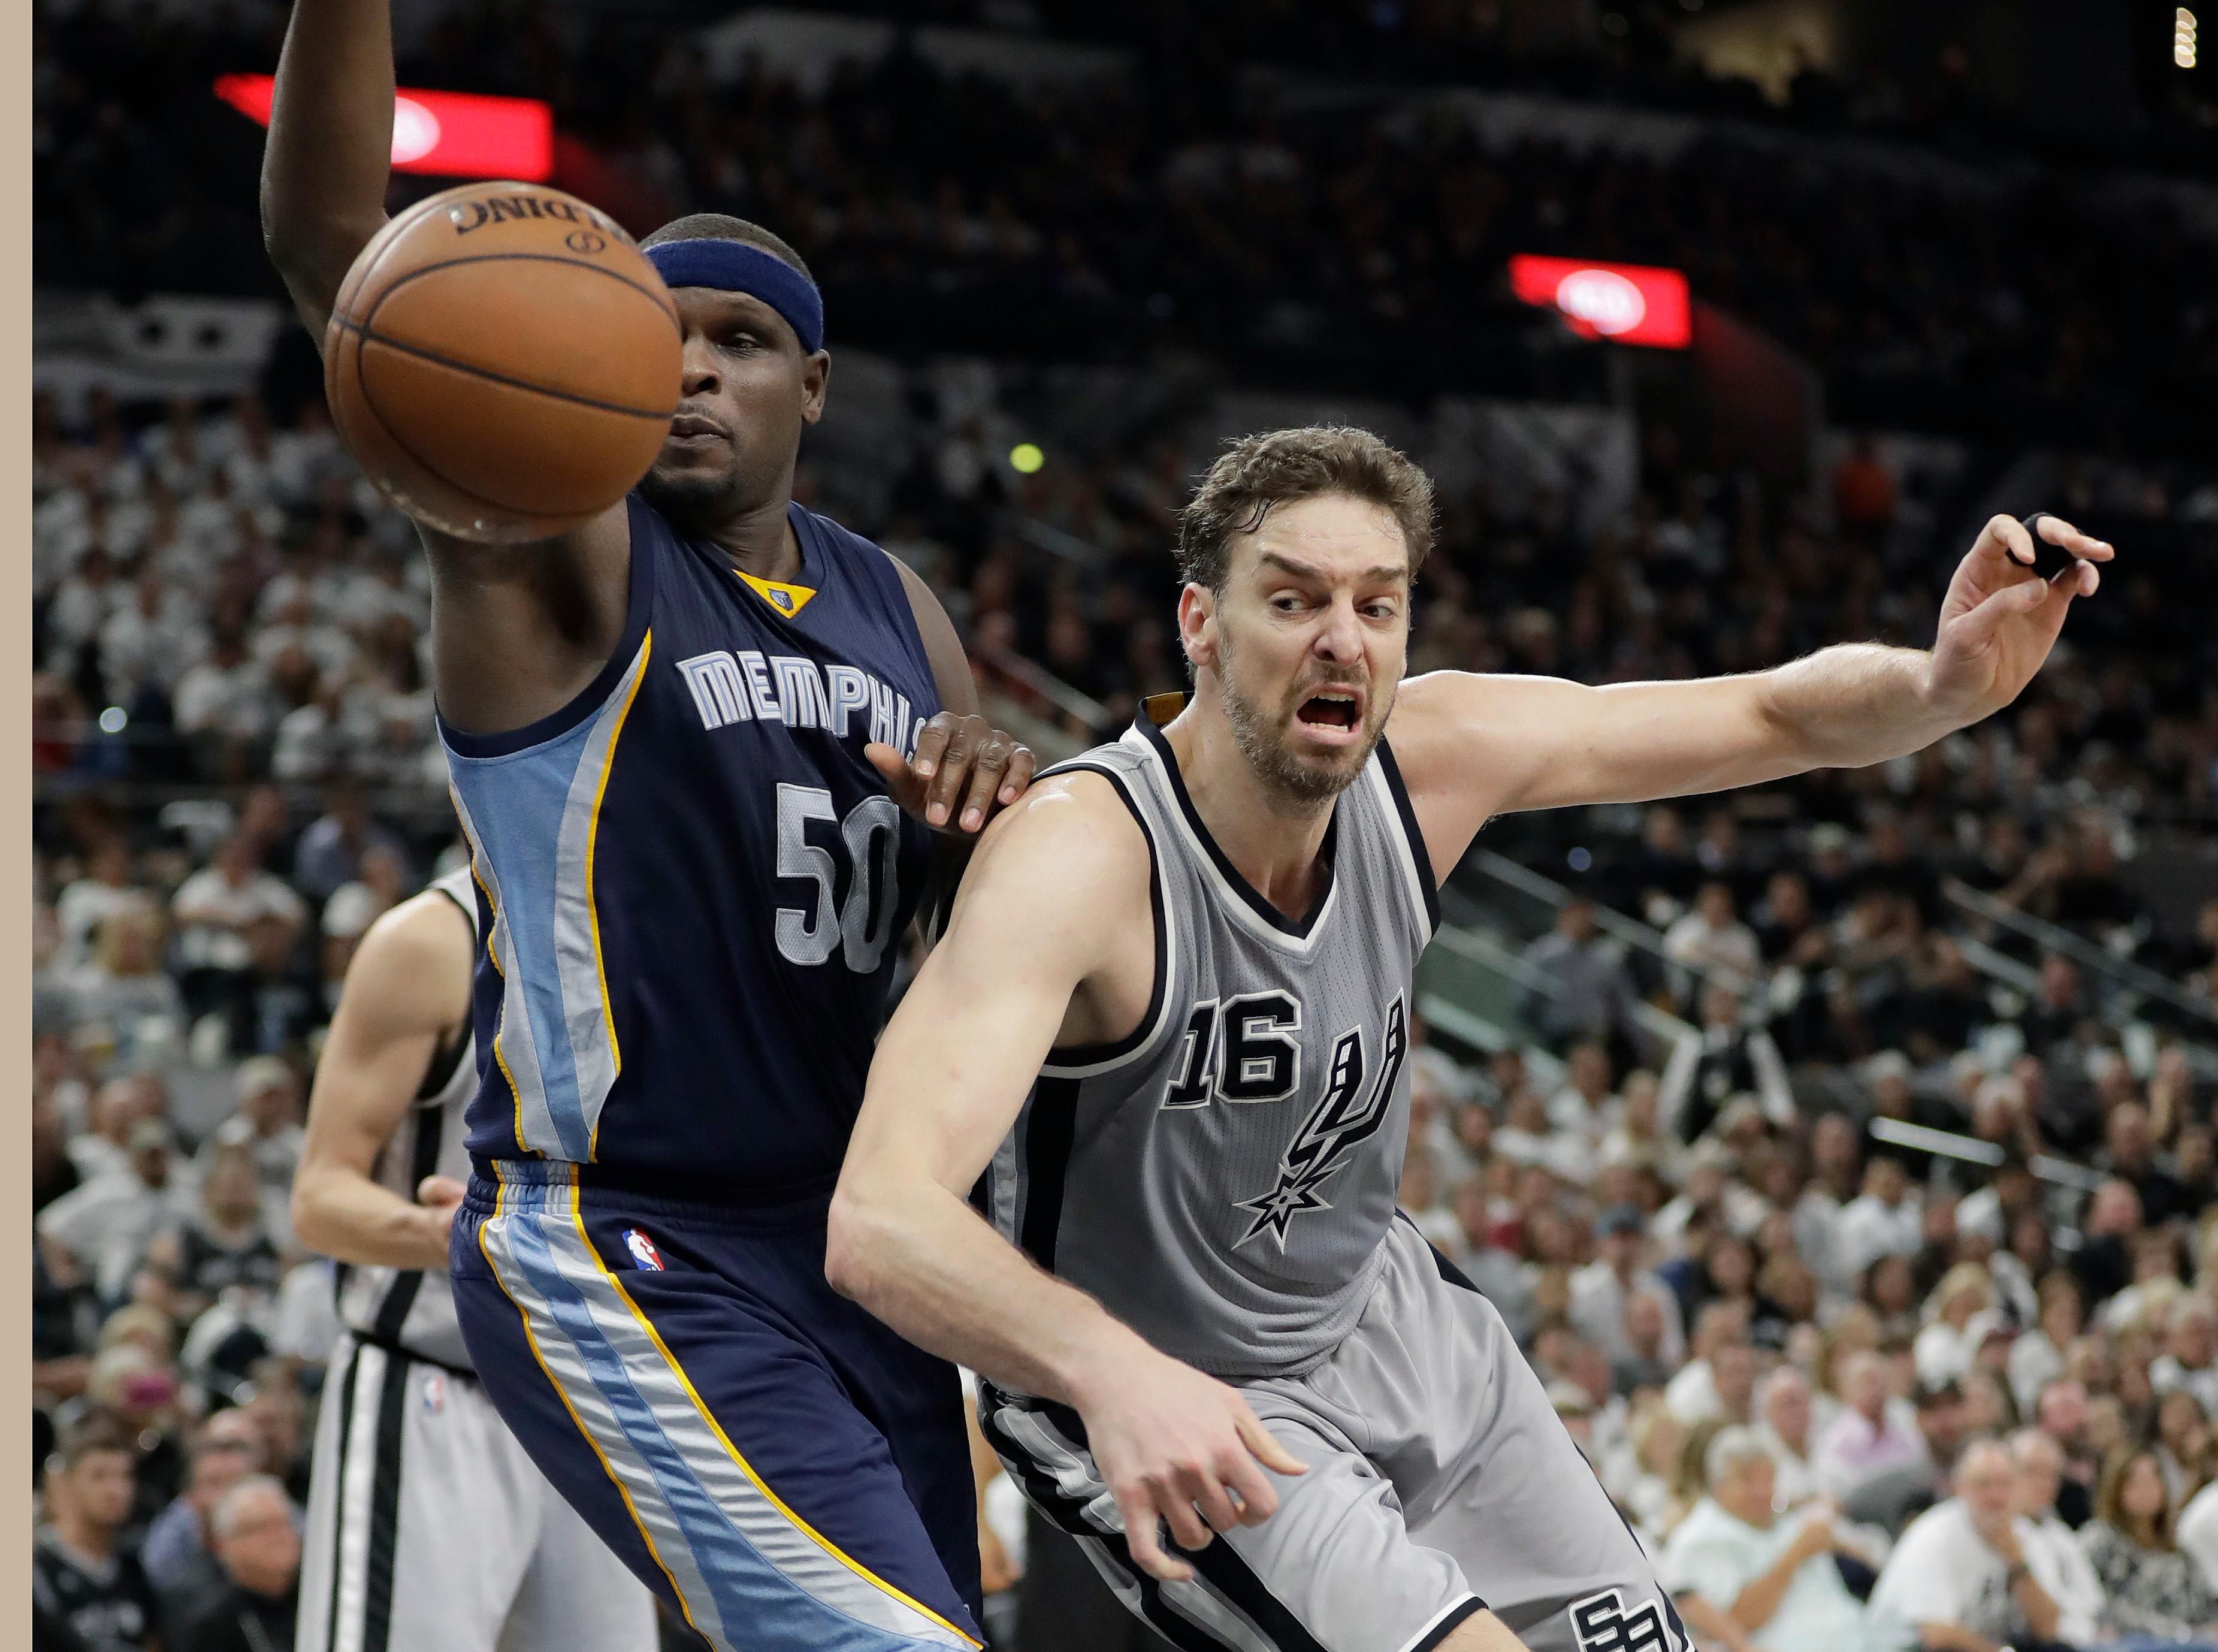 Memphis Grizzlies forward Zach Randolph (50) and San Antonio Spurs center Pau Gasol (16) chase a loose ball during the first half Game 1 in a first-round NBA basketball playoff series, Saturday, April 15, 2017, in San Antonio. (AP Photo/Eric Gay)